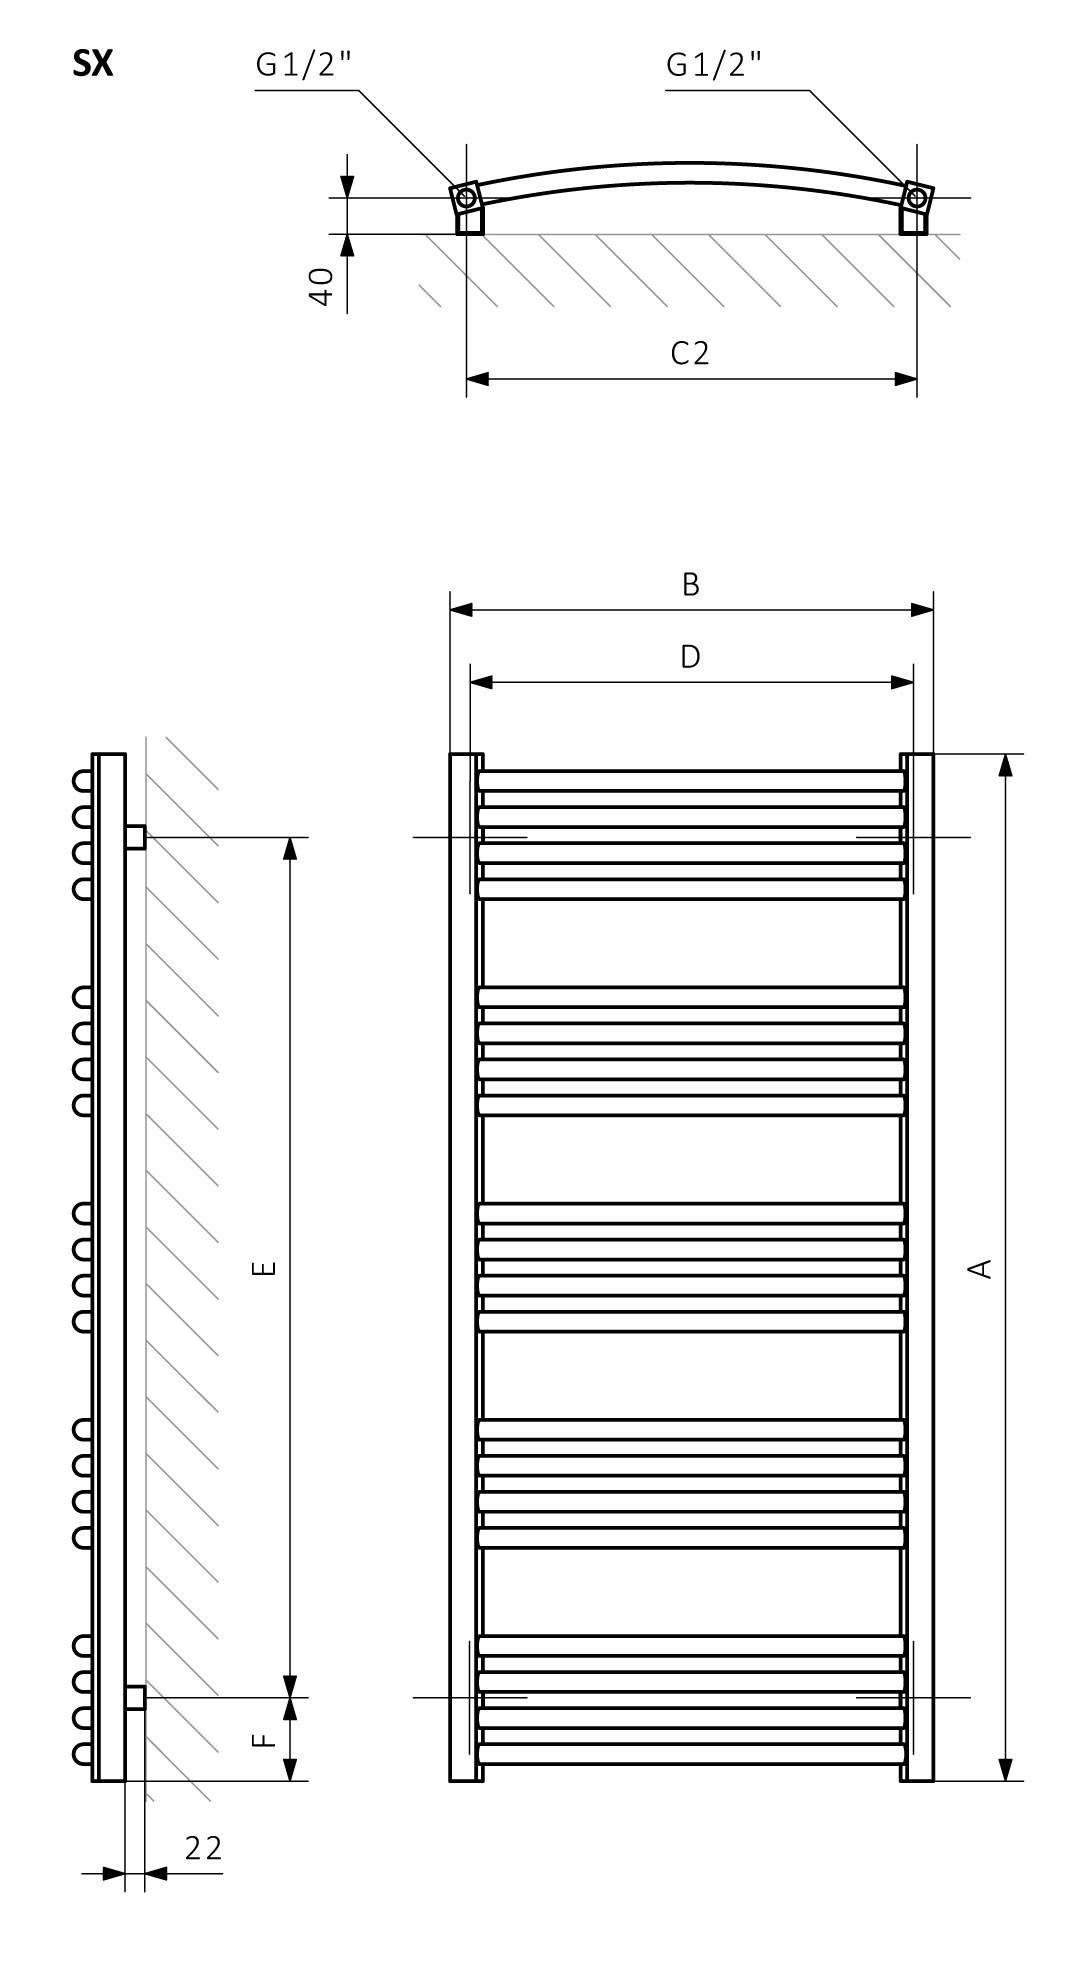 <p>A – Height, B – Width, C1-C5 – Distance between pipe centres, D – Horizontal distance between mounting bracket centres, E – Vertical distance between mounting brackets,<br /> F – Distance between a mounting bracket and the bottom of the radiator</p>